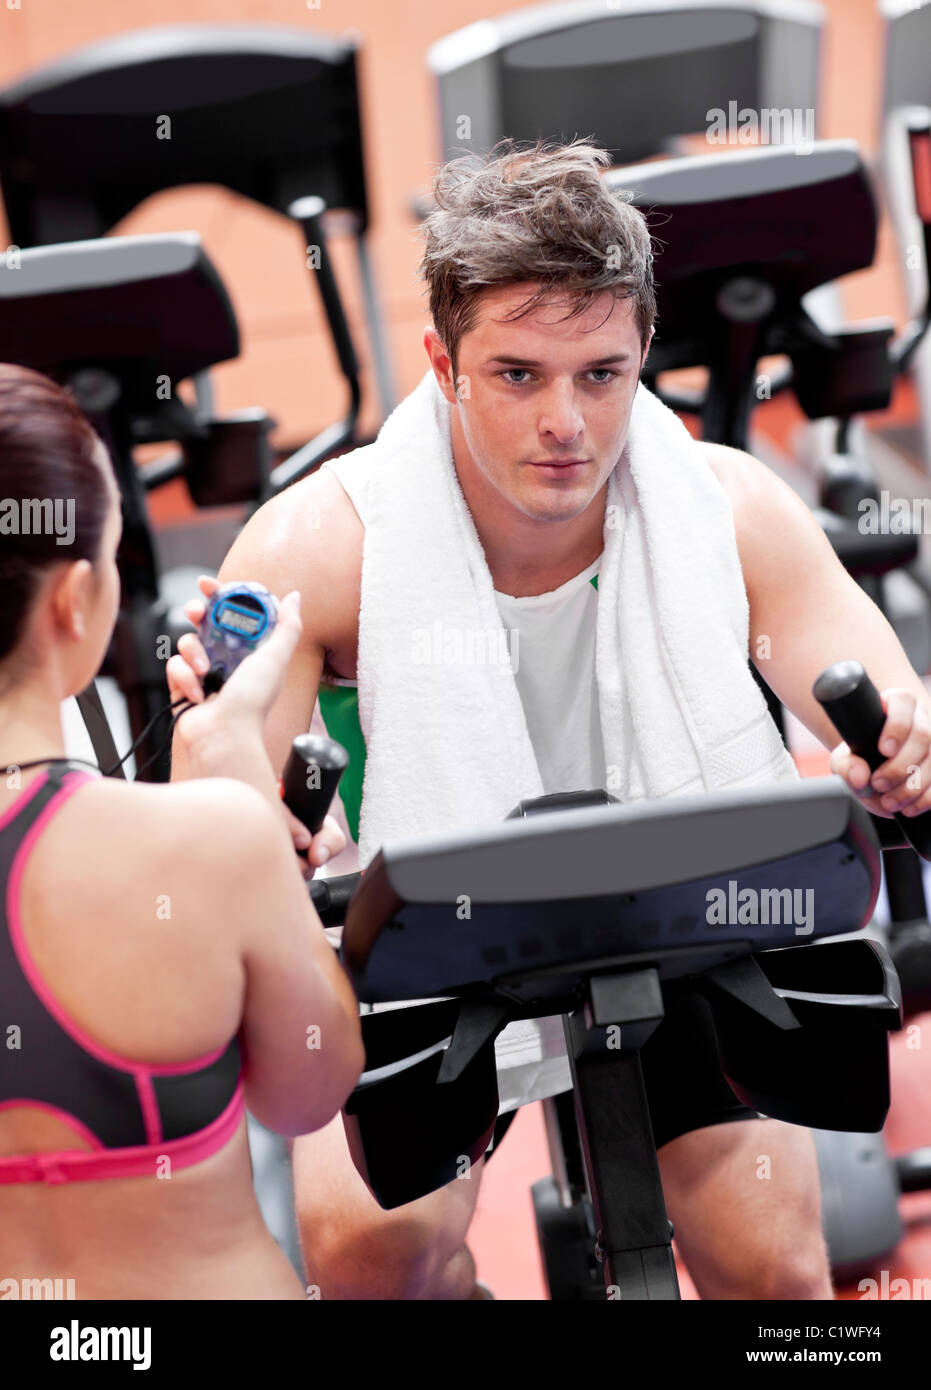 Female coach using a chronometer while man is doing physical exercises in a fitness centre - Stock Image